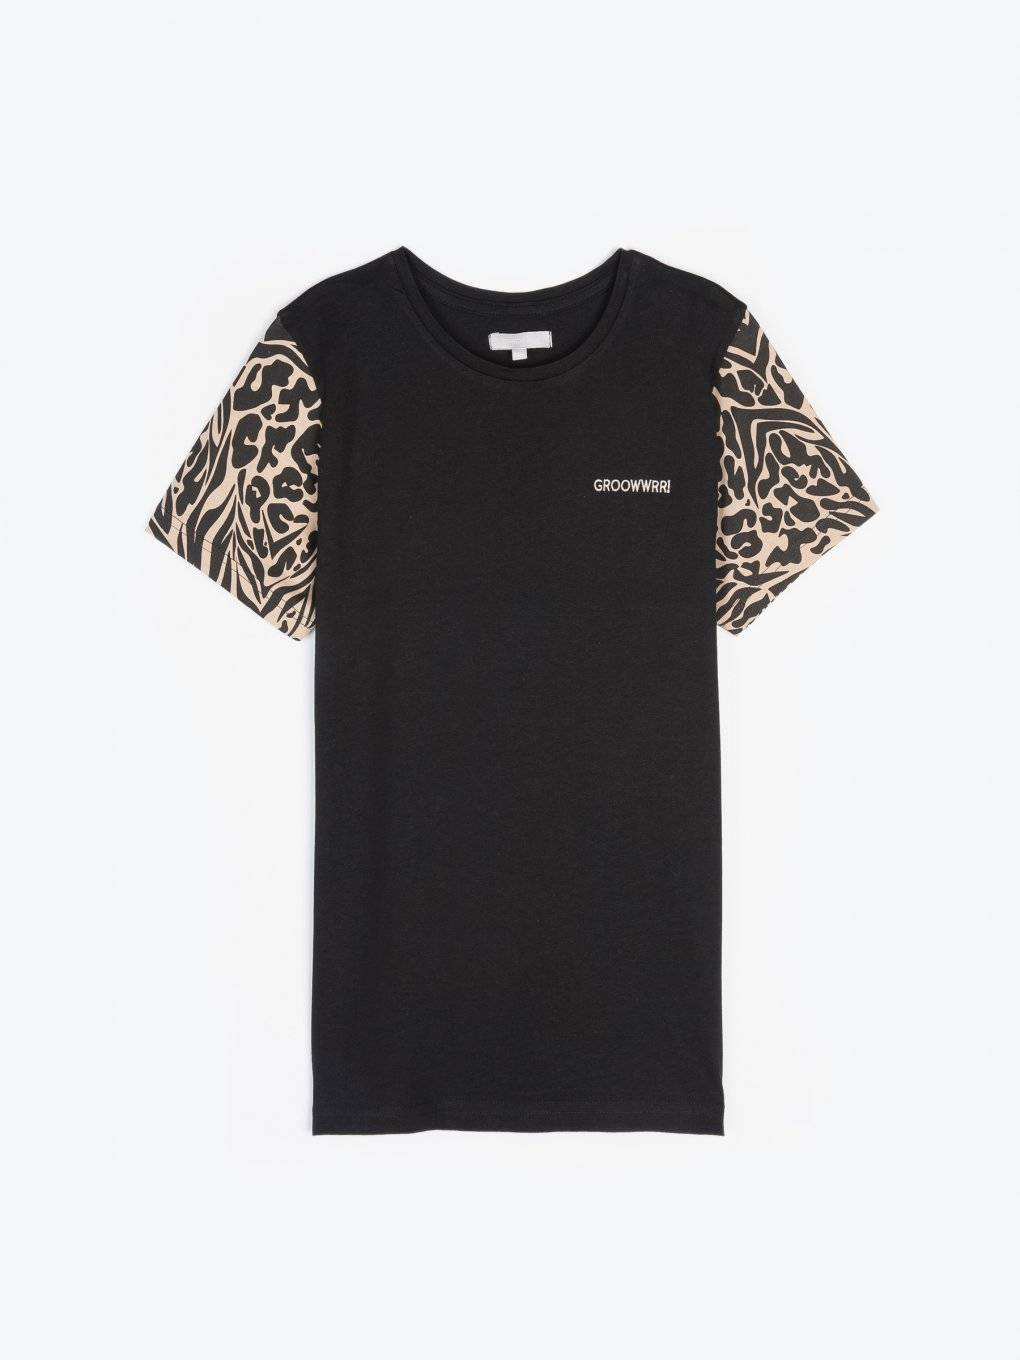 T- shirt with animal printed sleeves